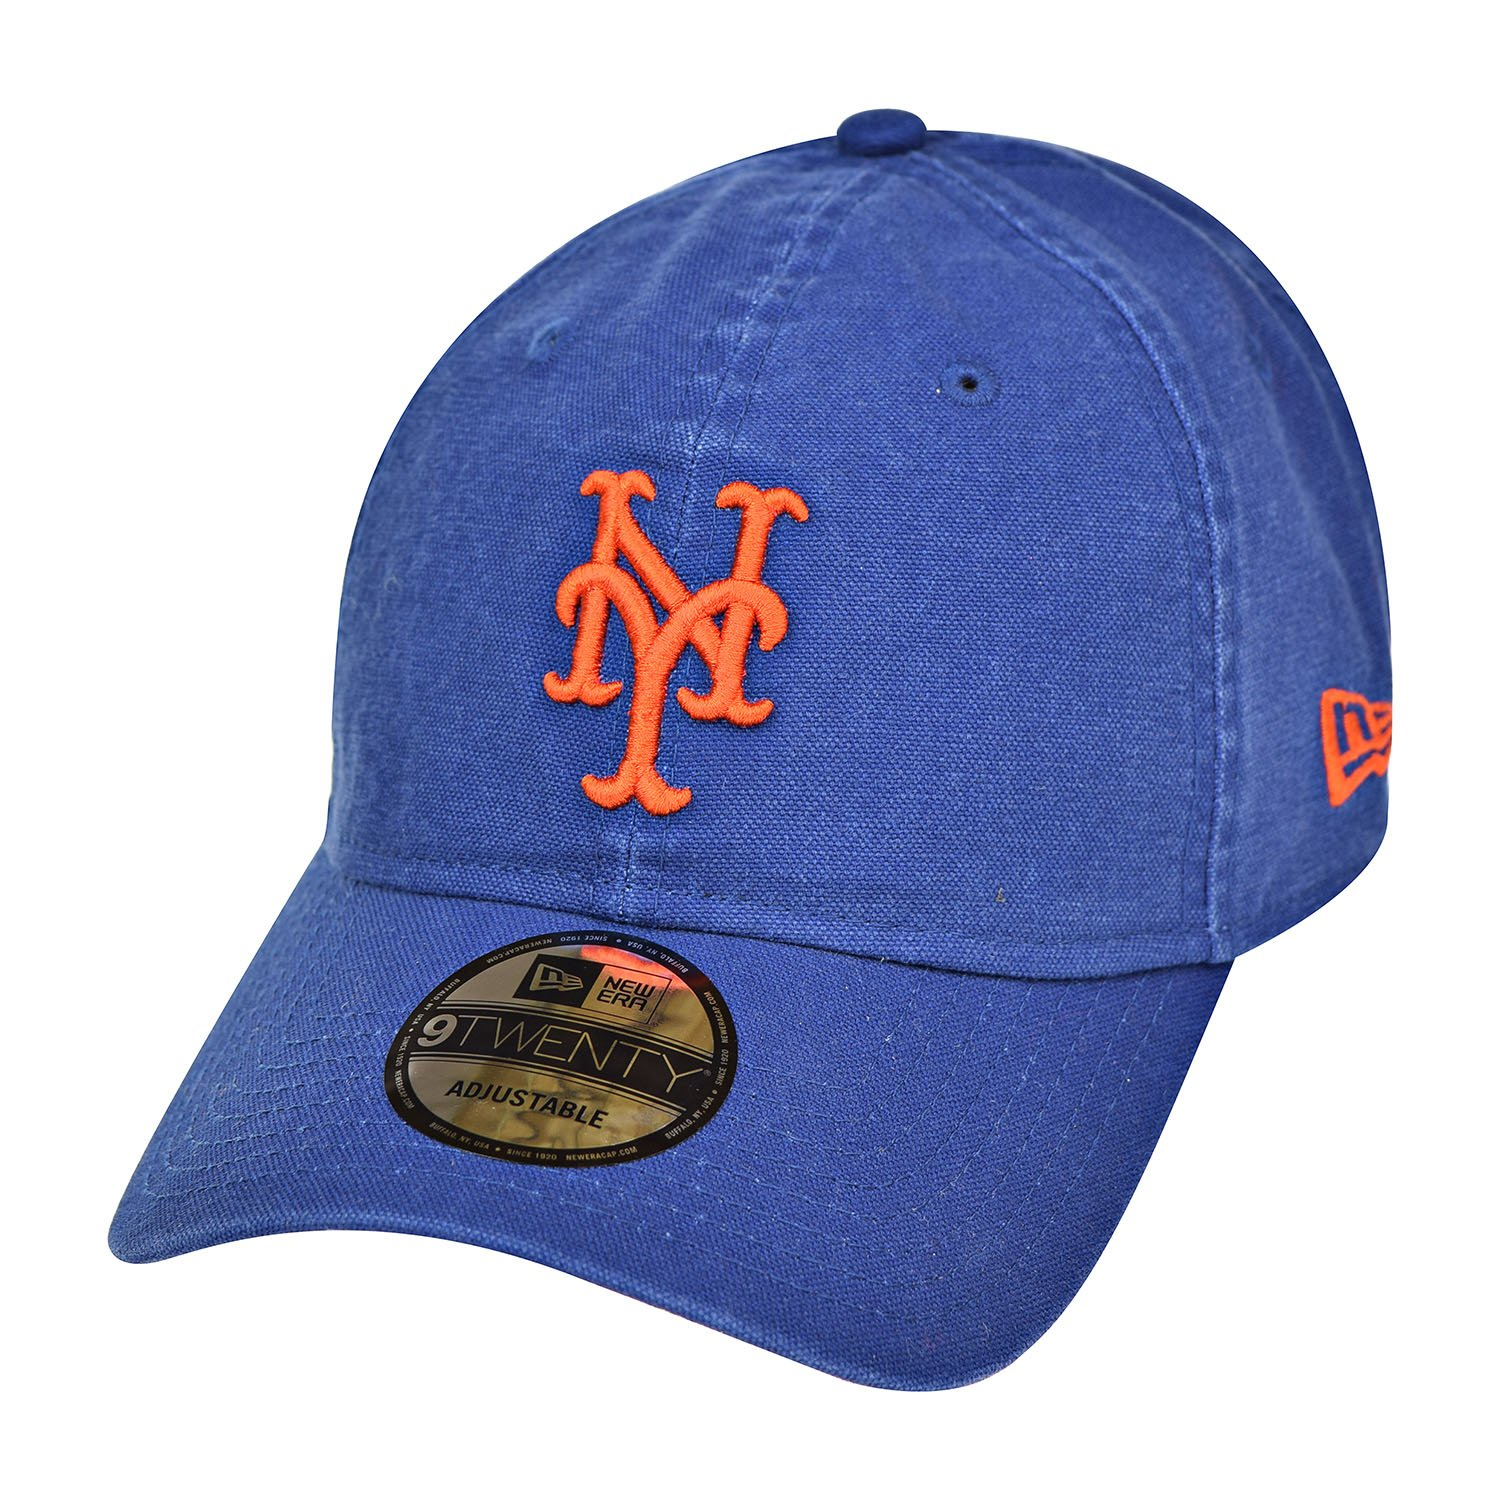 a4cba4e0e94 Amazon.com  New York Mets New Era MLB 9Twenty Primary Core Classic  Adjustable Hat  Sports   Outdoors